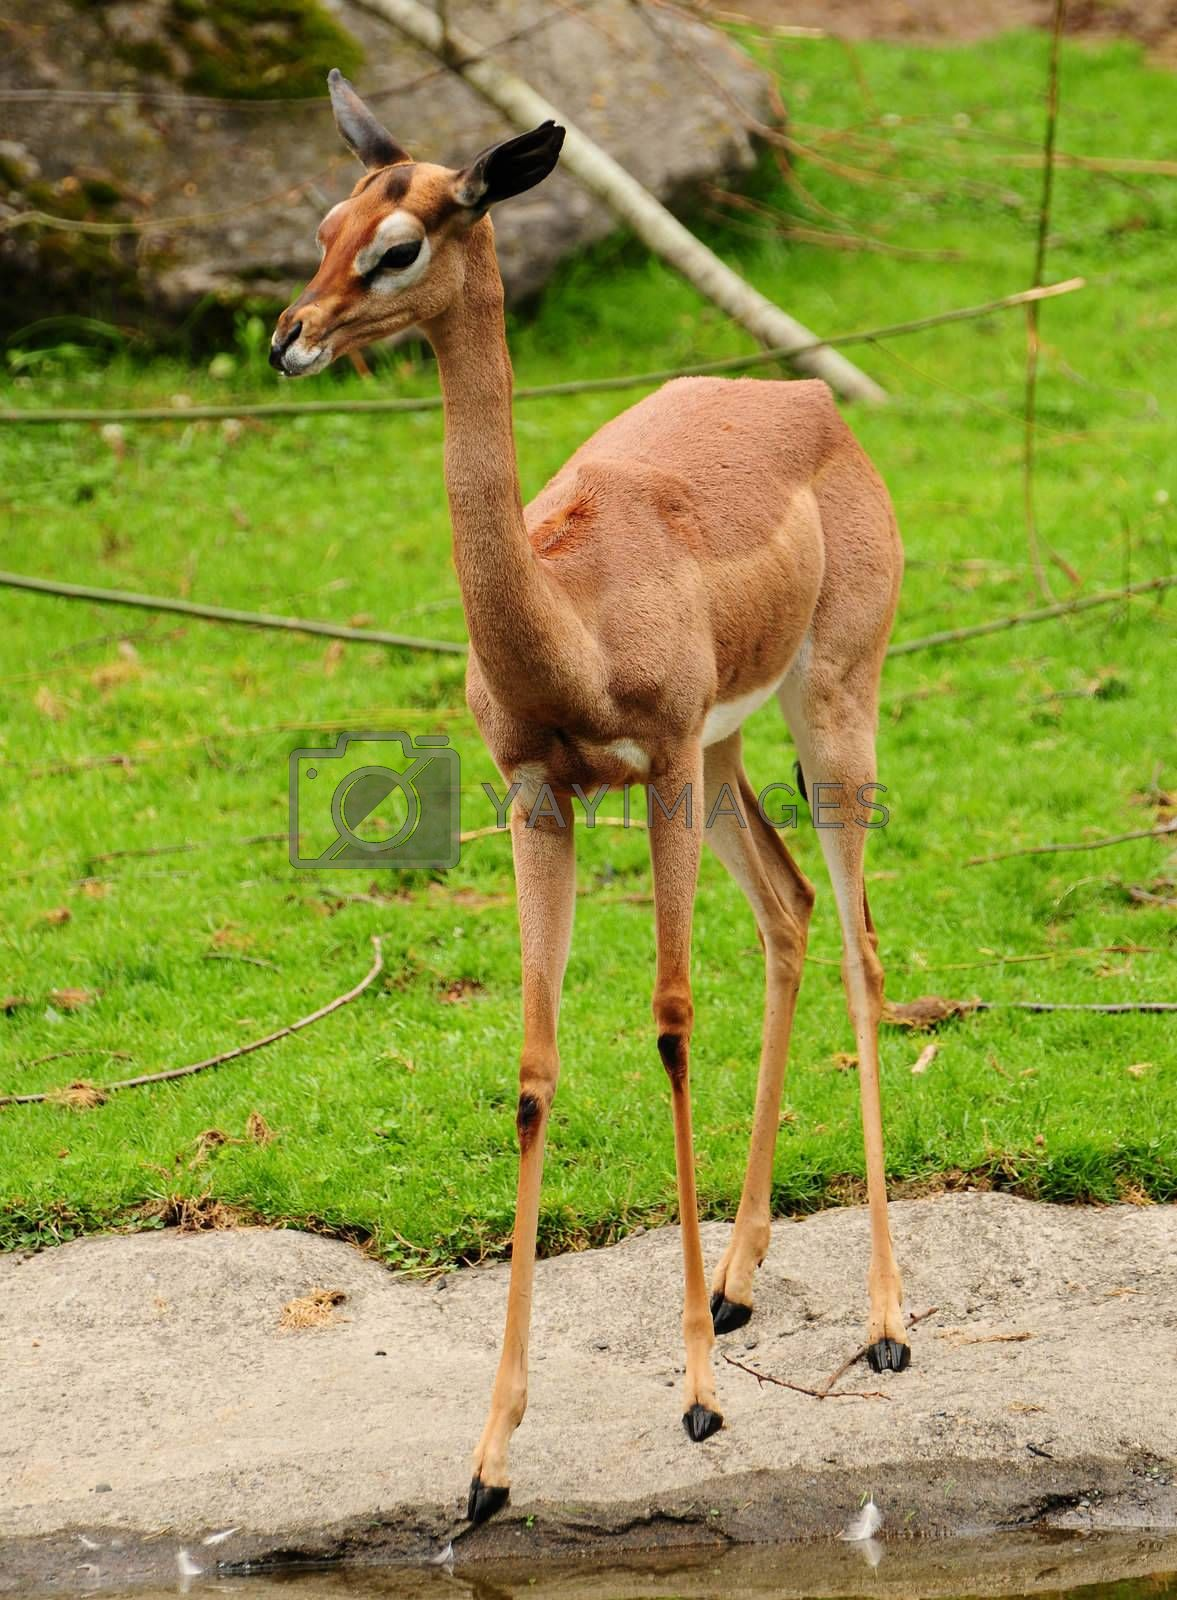 Royalty free image of Gazelle by neelsky